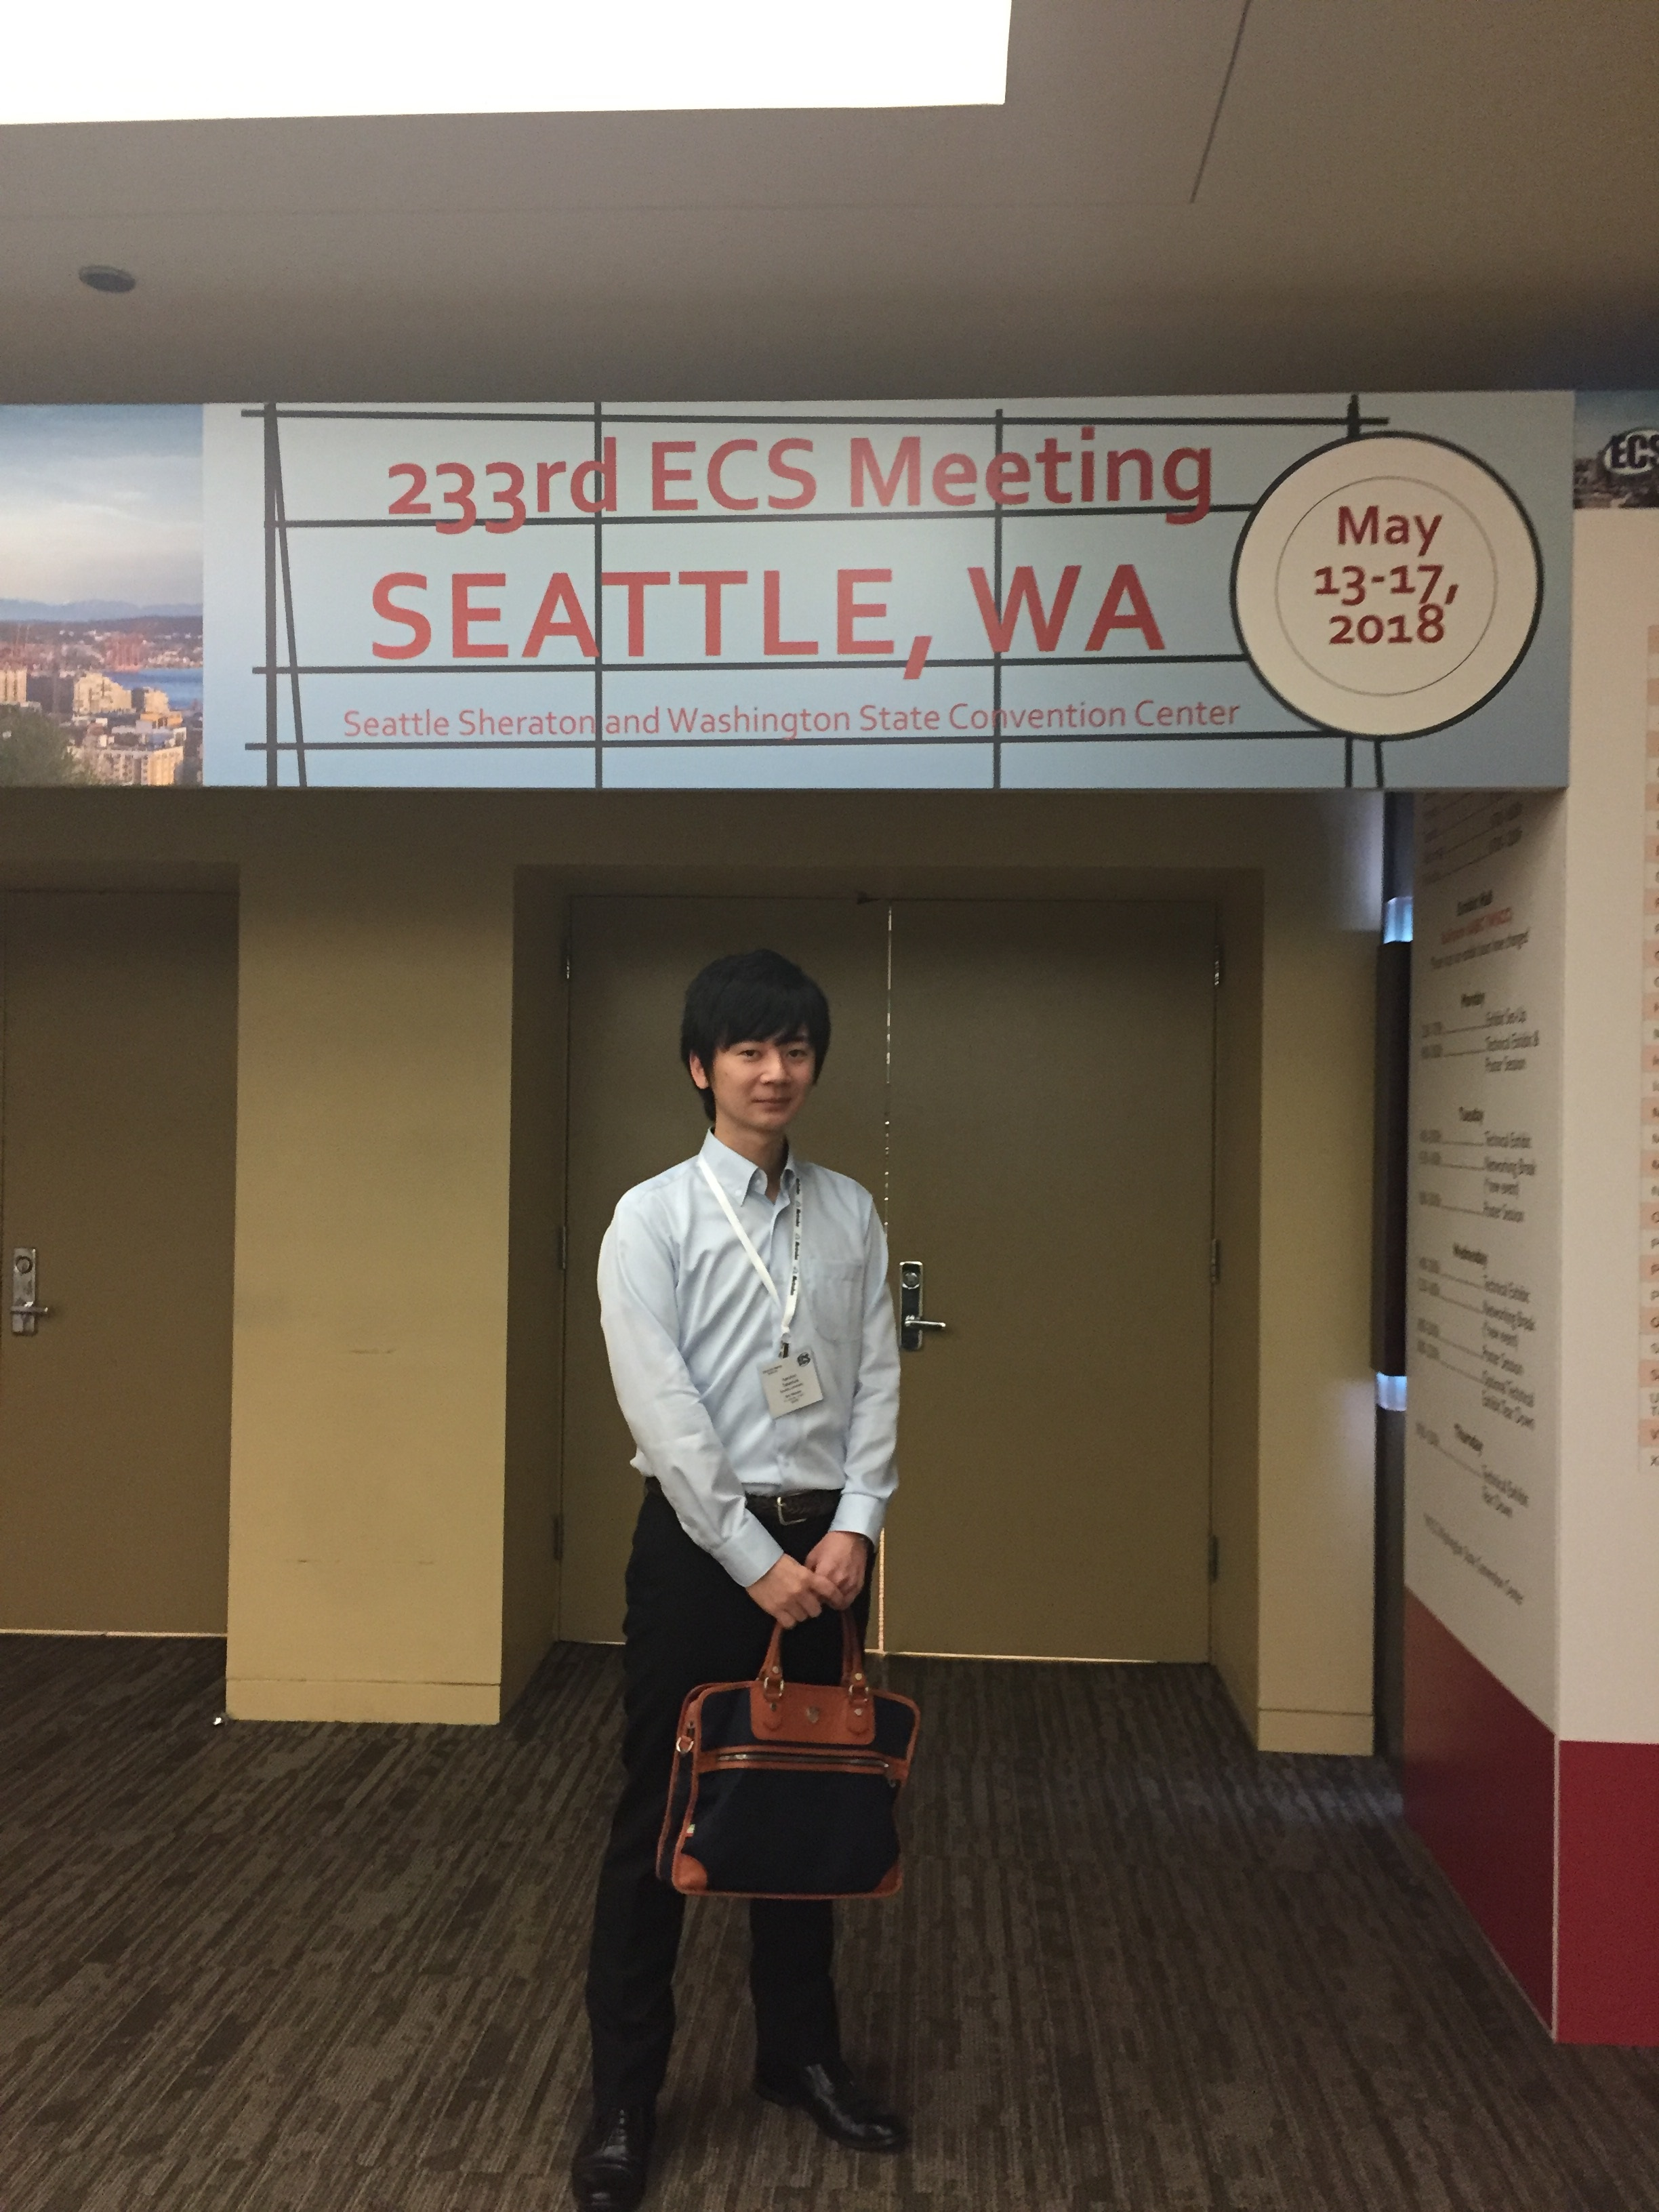 Takamura(D3) gave a paper on 233rd ECS MEETING.